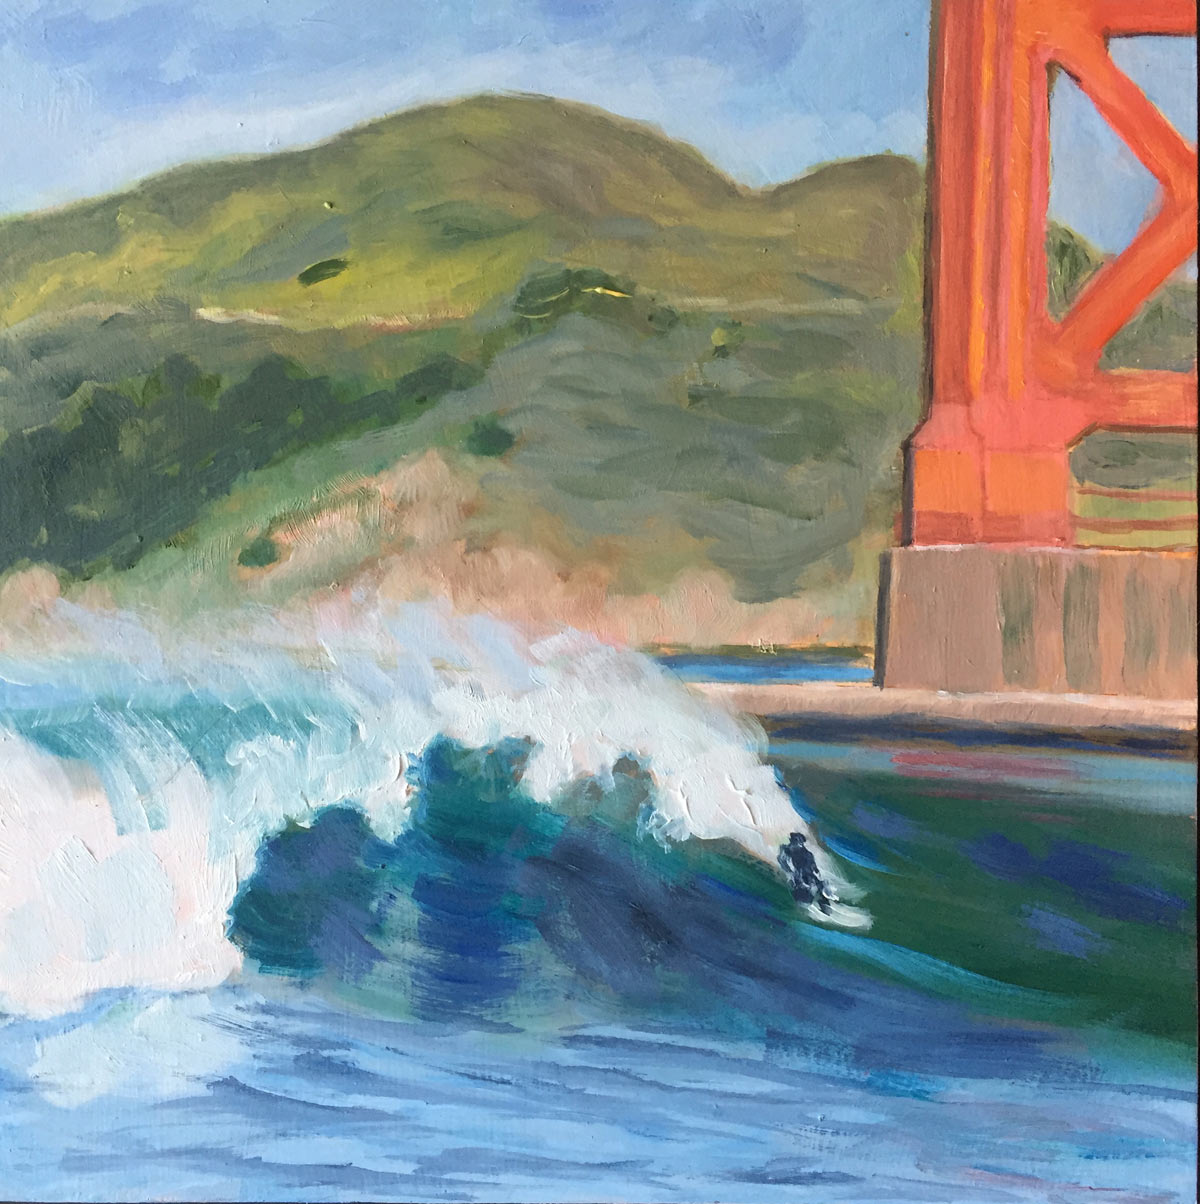 "Golden Gate surfing, 8"" x8"", oil on wood panel"